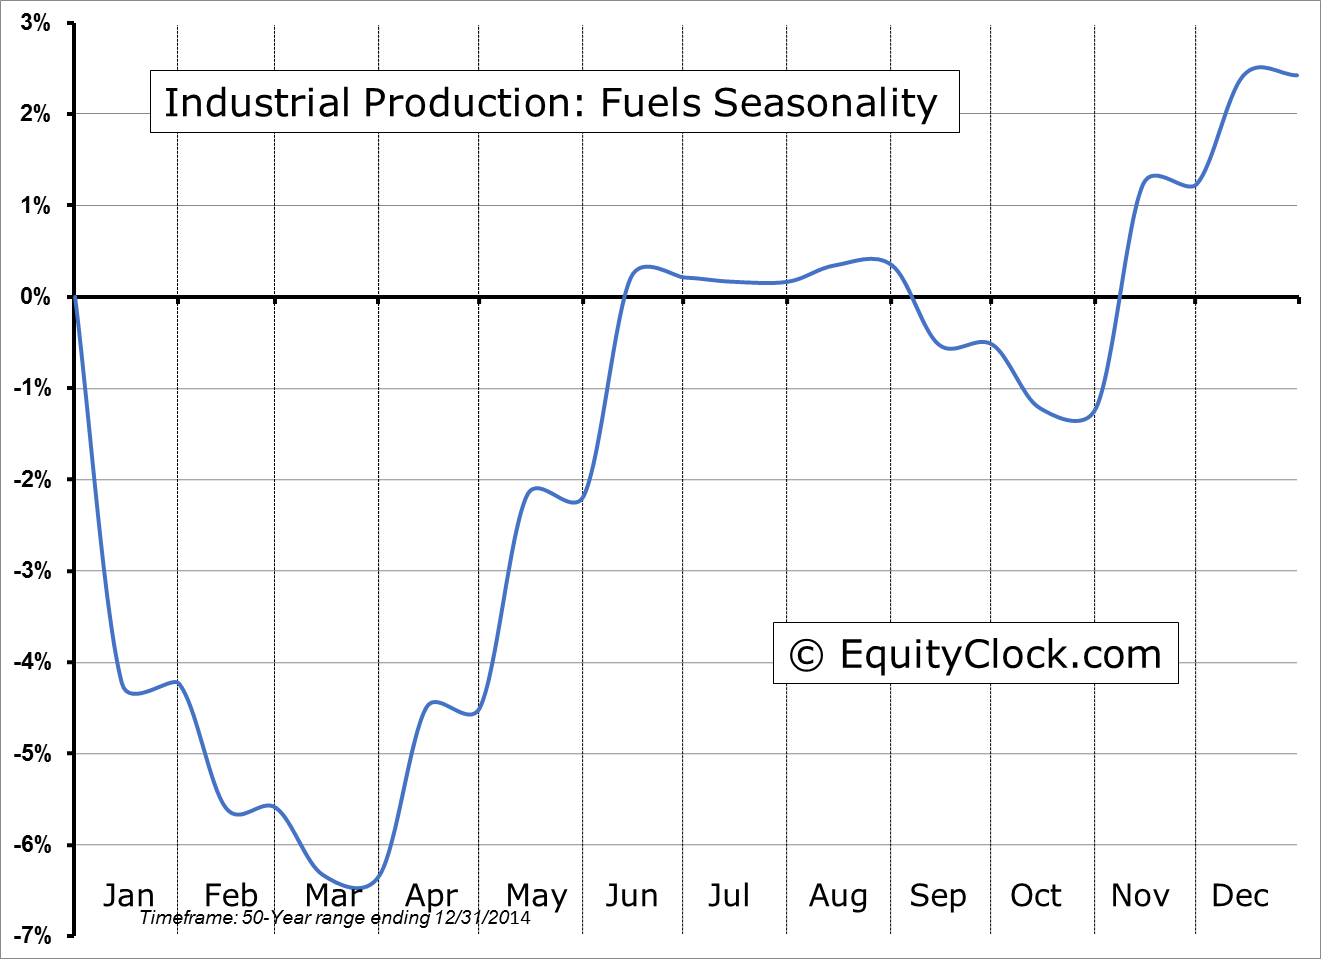 Industrial Production: Fuels Seasonality